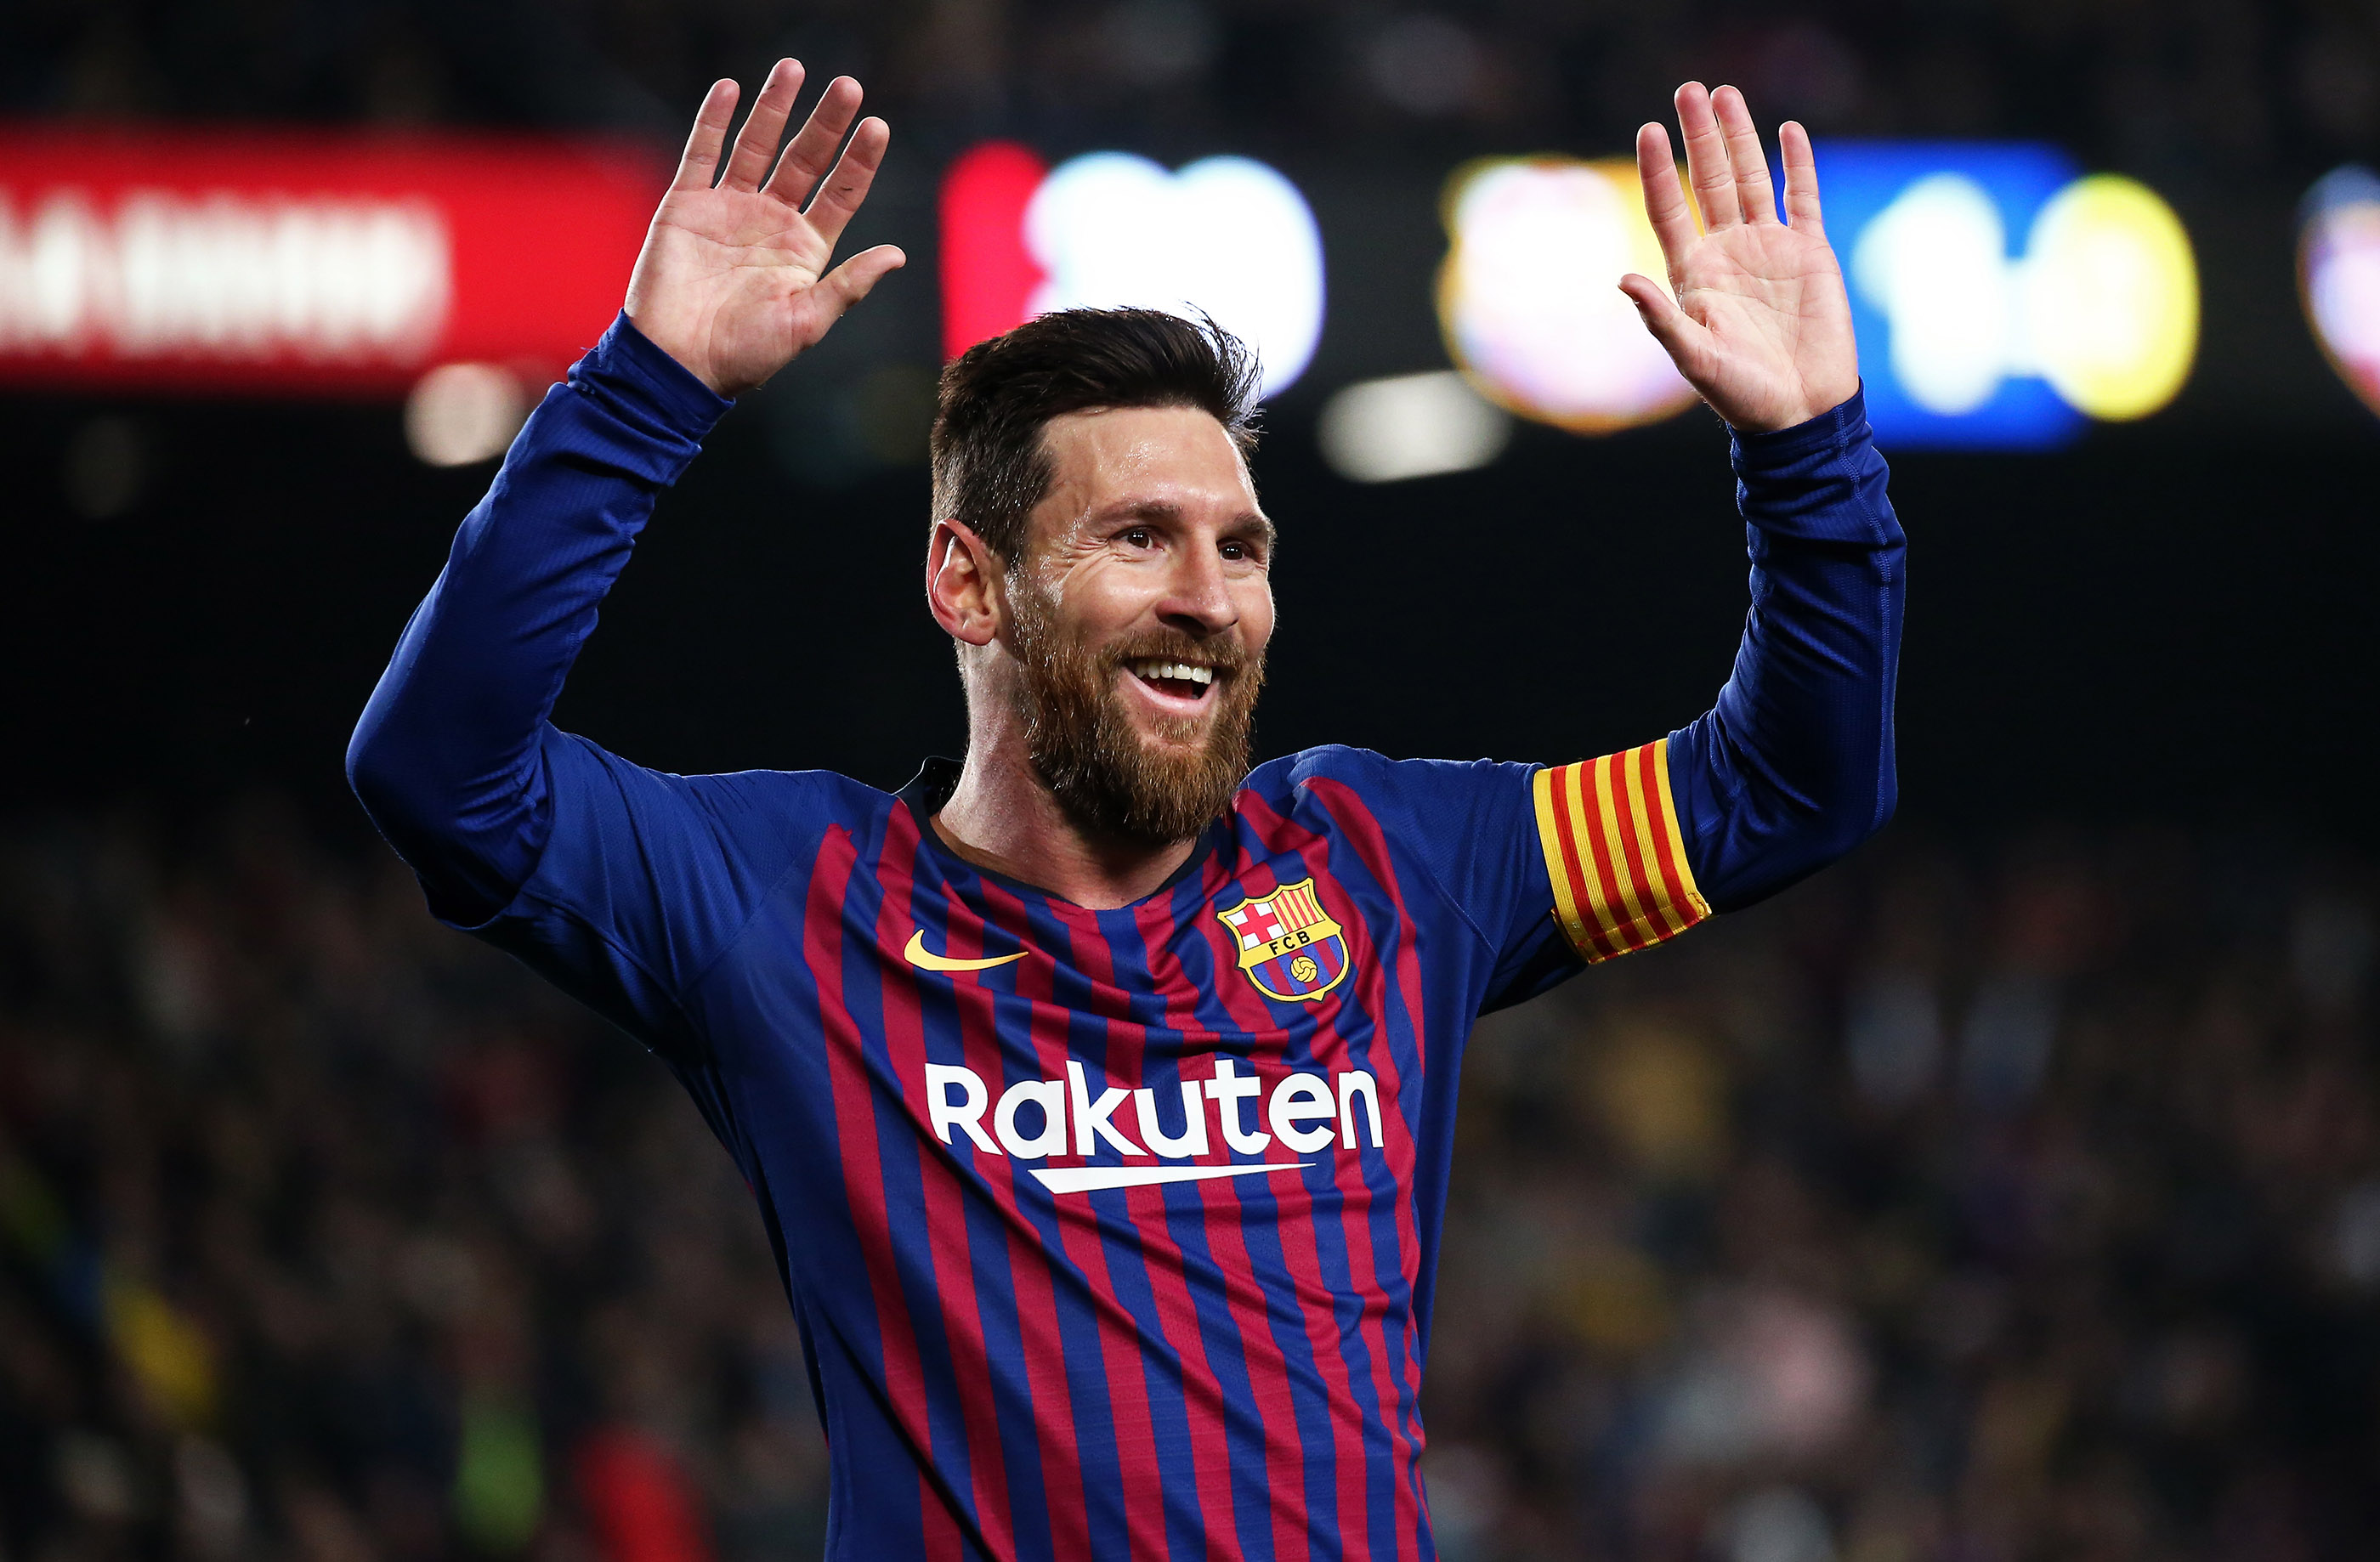 Leo Messi during the match between FC Barcelona and Levante UD, corresponding to the 1/8 final of the spanish cup, played at the Camp Nou Stadium, on 17th January 2019, in Barcelona, Spain.